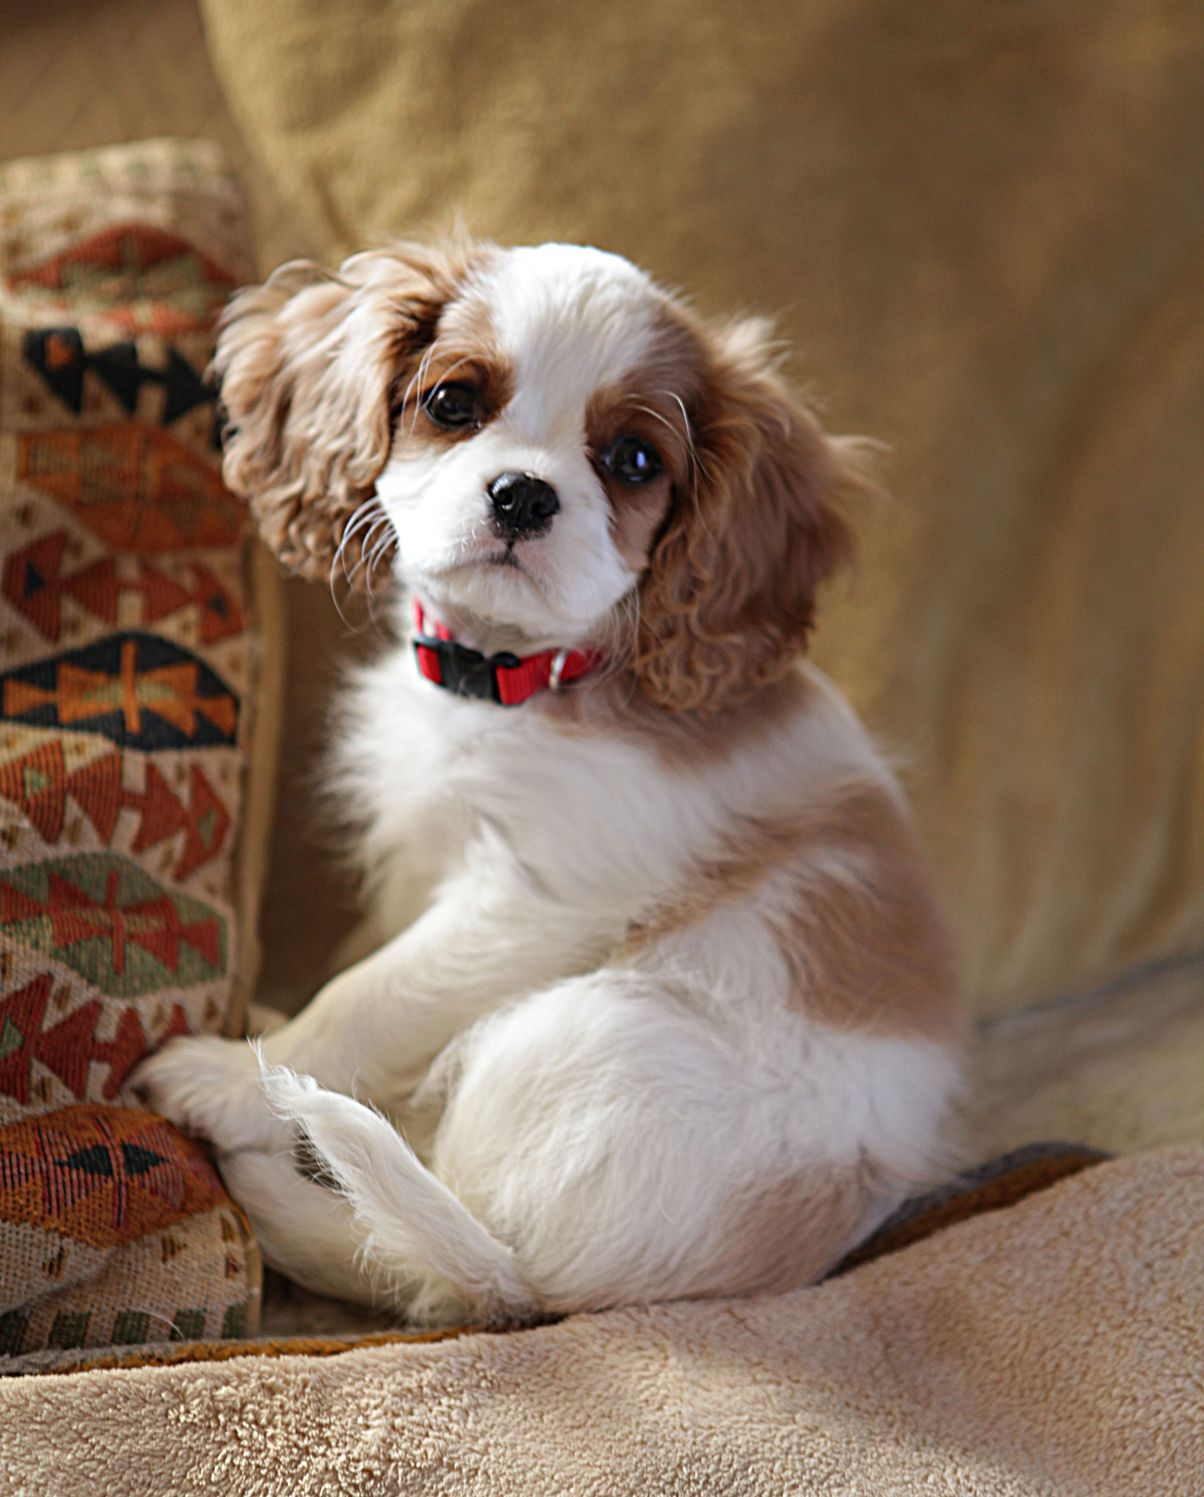 A New Cavalier King Charles Spaniel Puppy King Charles Dog King Charles Cavalier Spaniel Puppy Cavalier Puppy